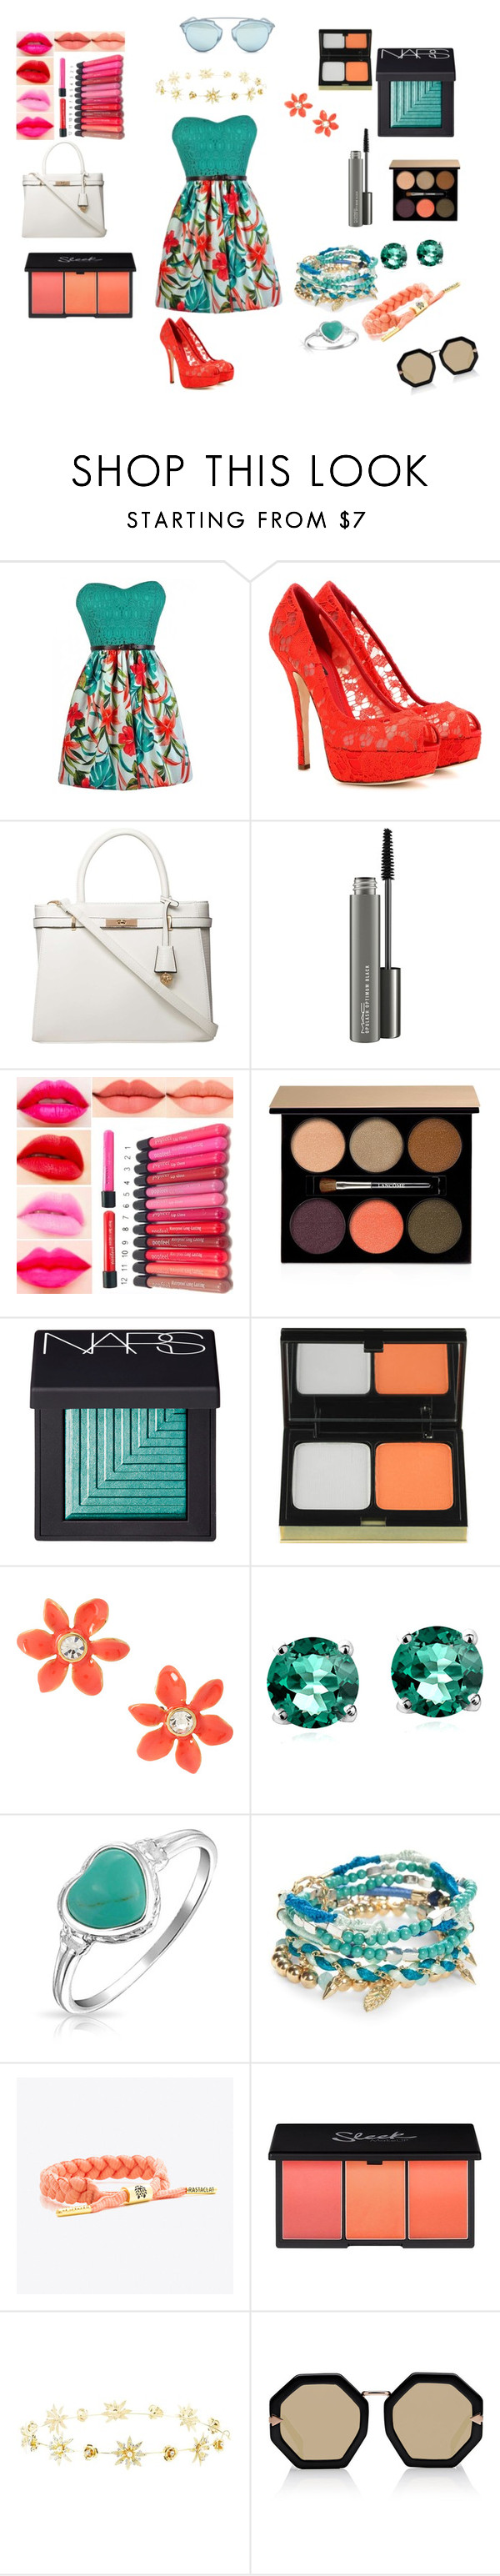 """All dressed up"" by dadacollins on Polyvore featuring Dolce&Gabbana, Dorothy Perkins, MAC Cosmetics, Lancôme, NARS Cosmetics, Kevyn Aucoin, Kate Spade, Glitzy Rocks, Bling Jewelry and Red Camel"